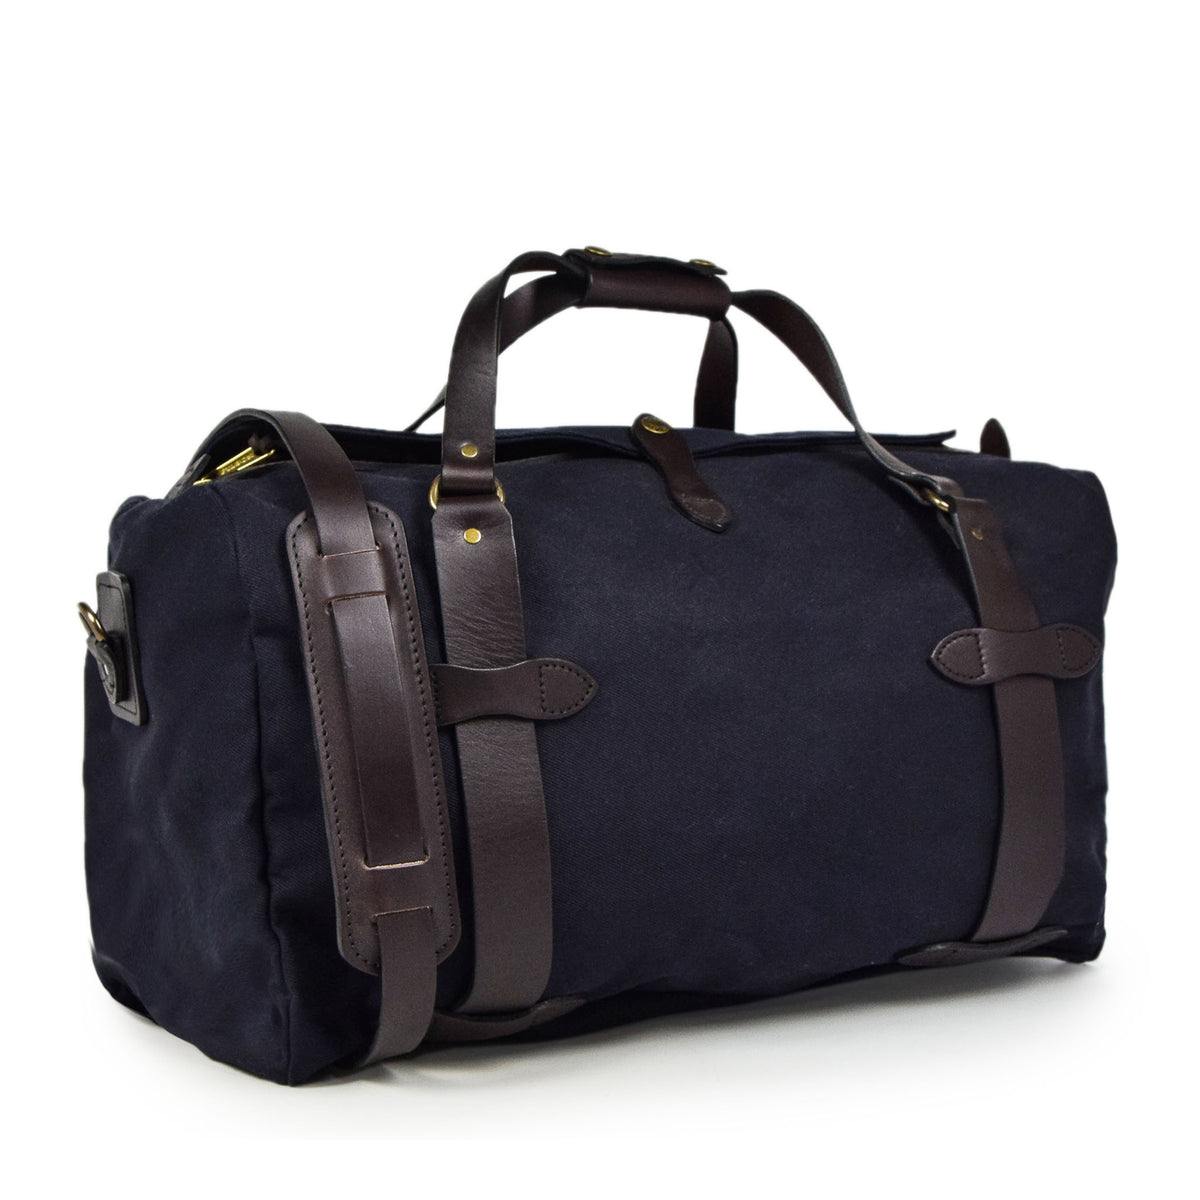 Filson Rugged Twill Carry-On Duffle Bag Navy Side